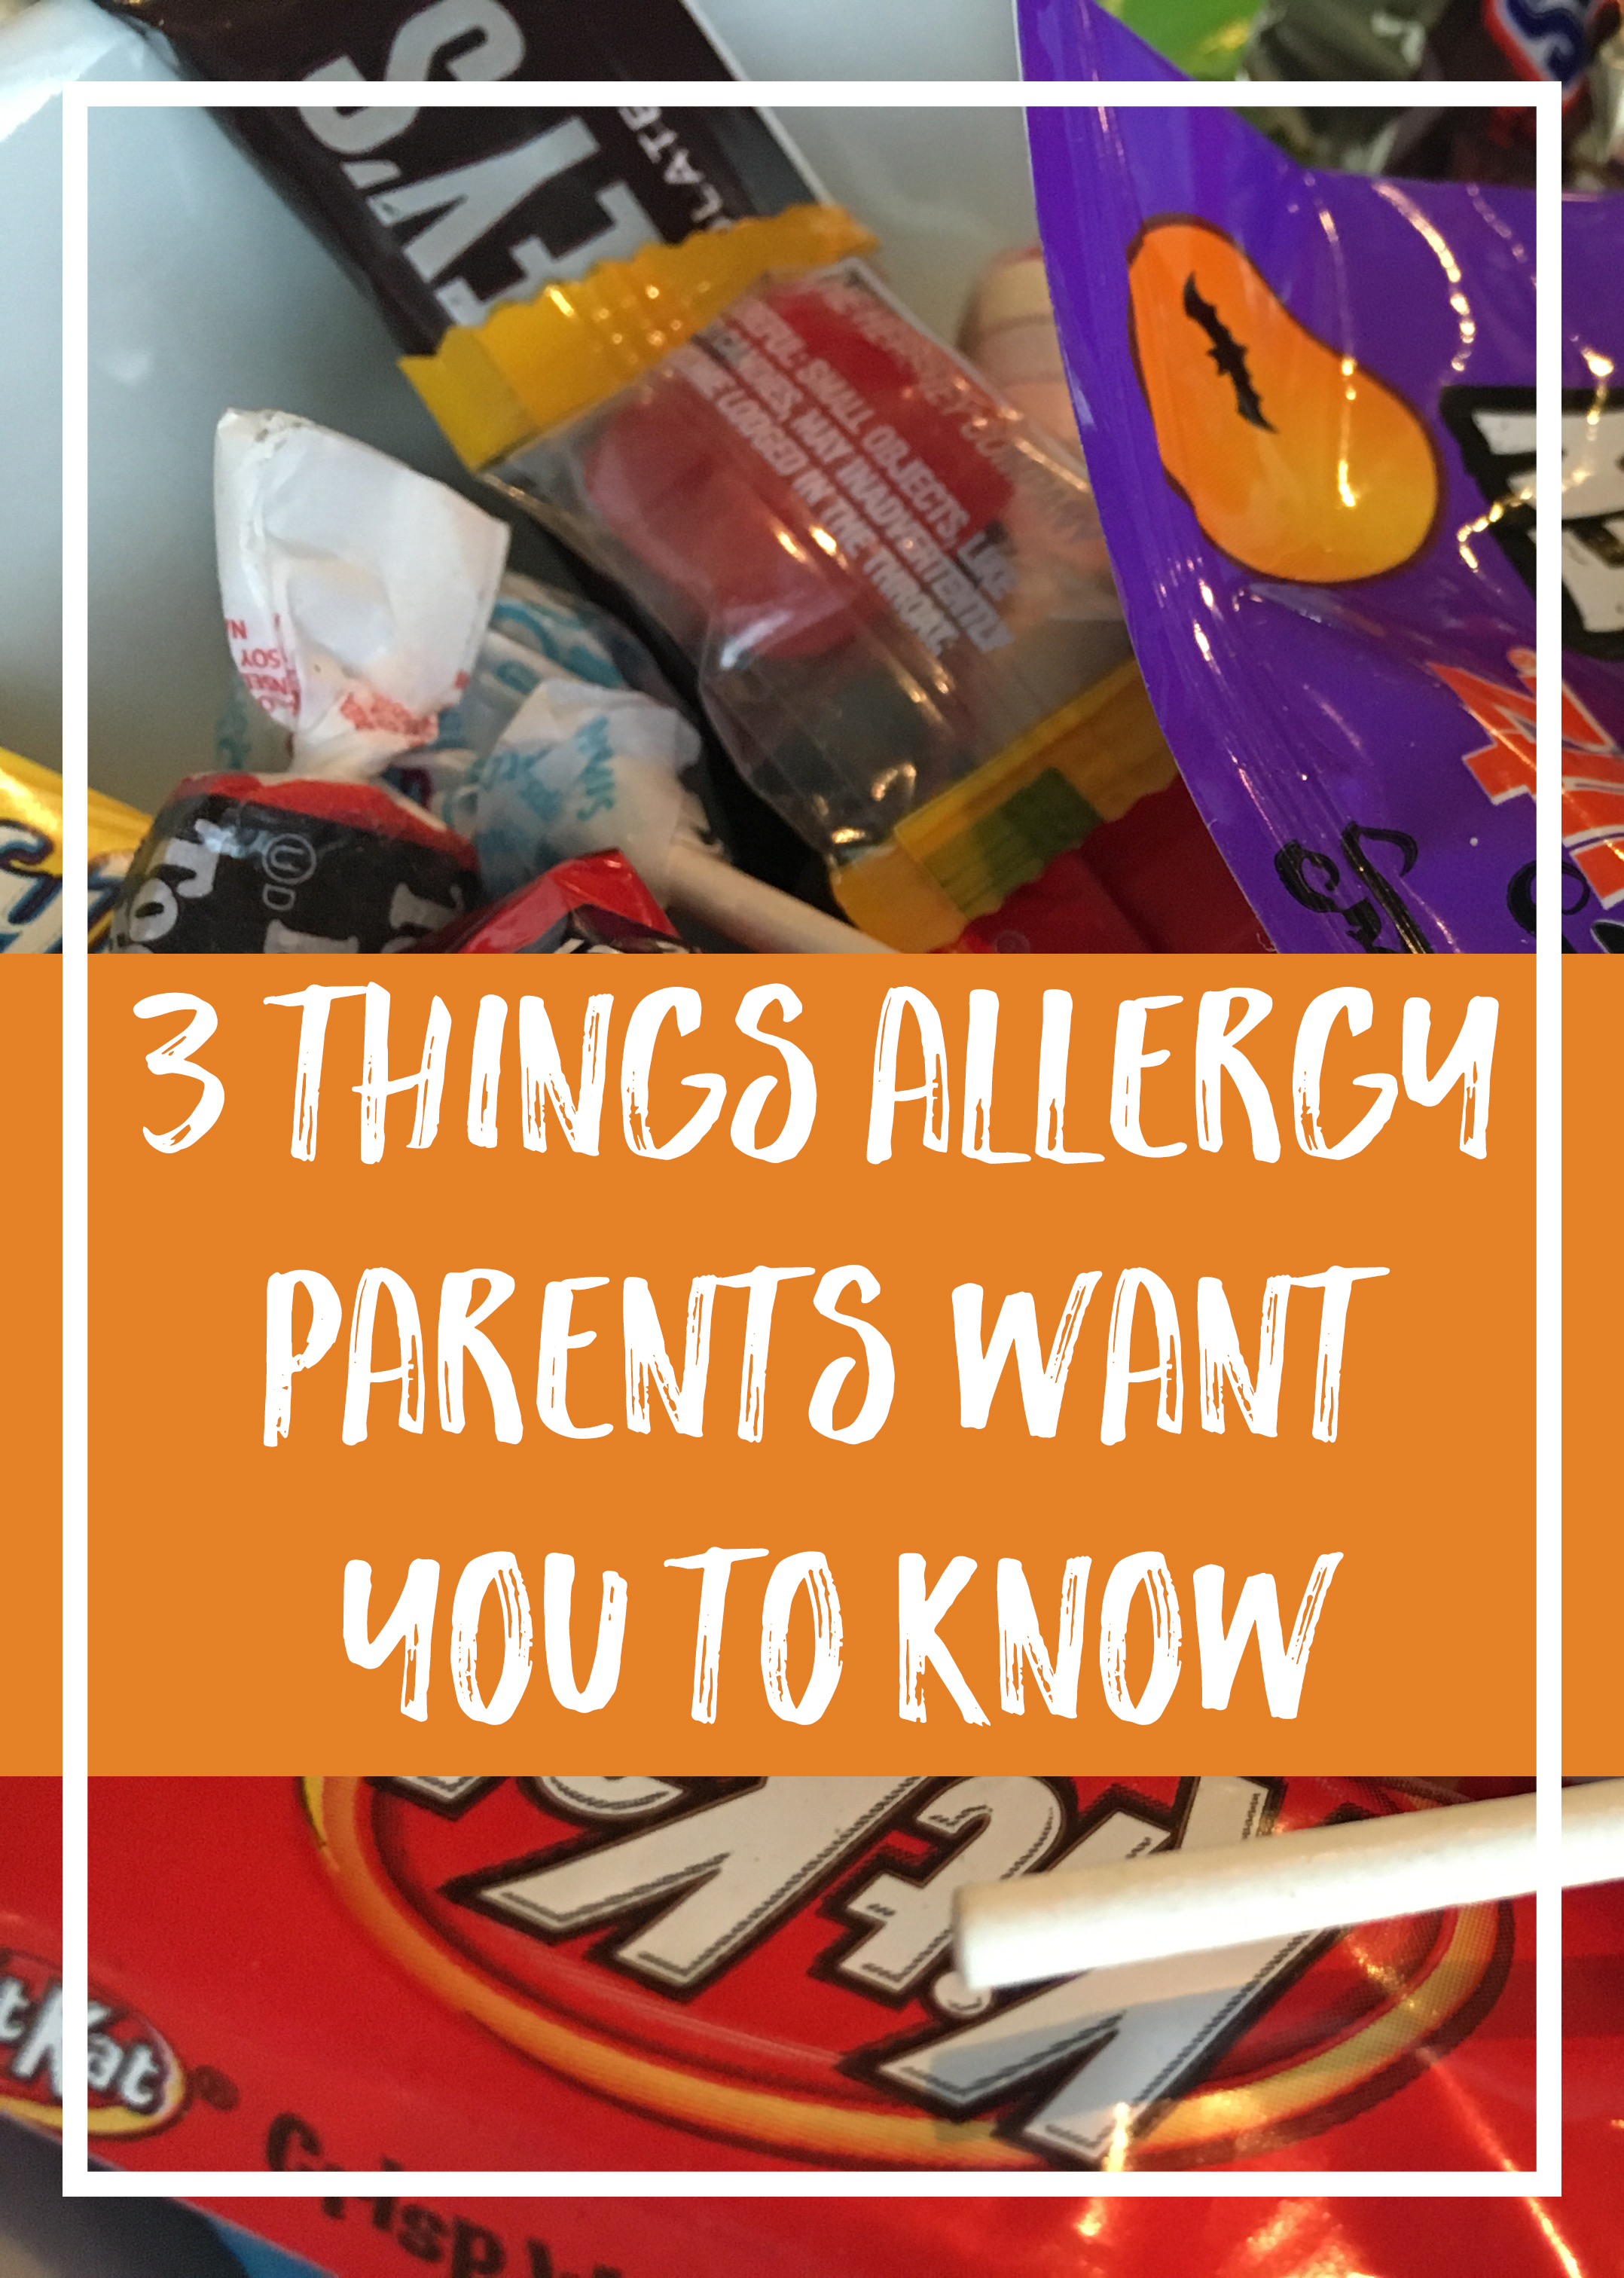 3-things-allergy-parents-want-you-to-know